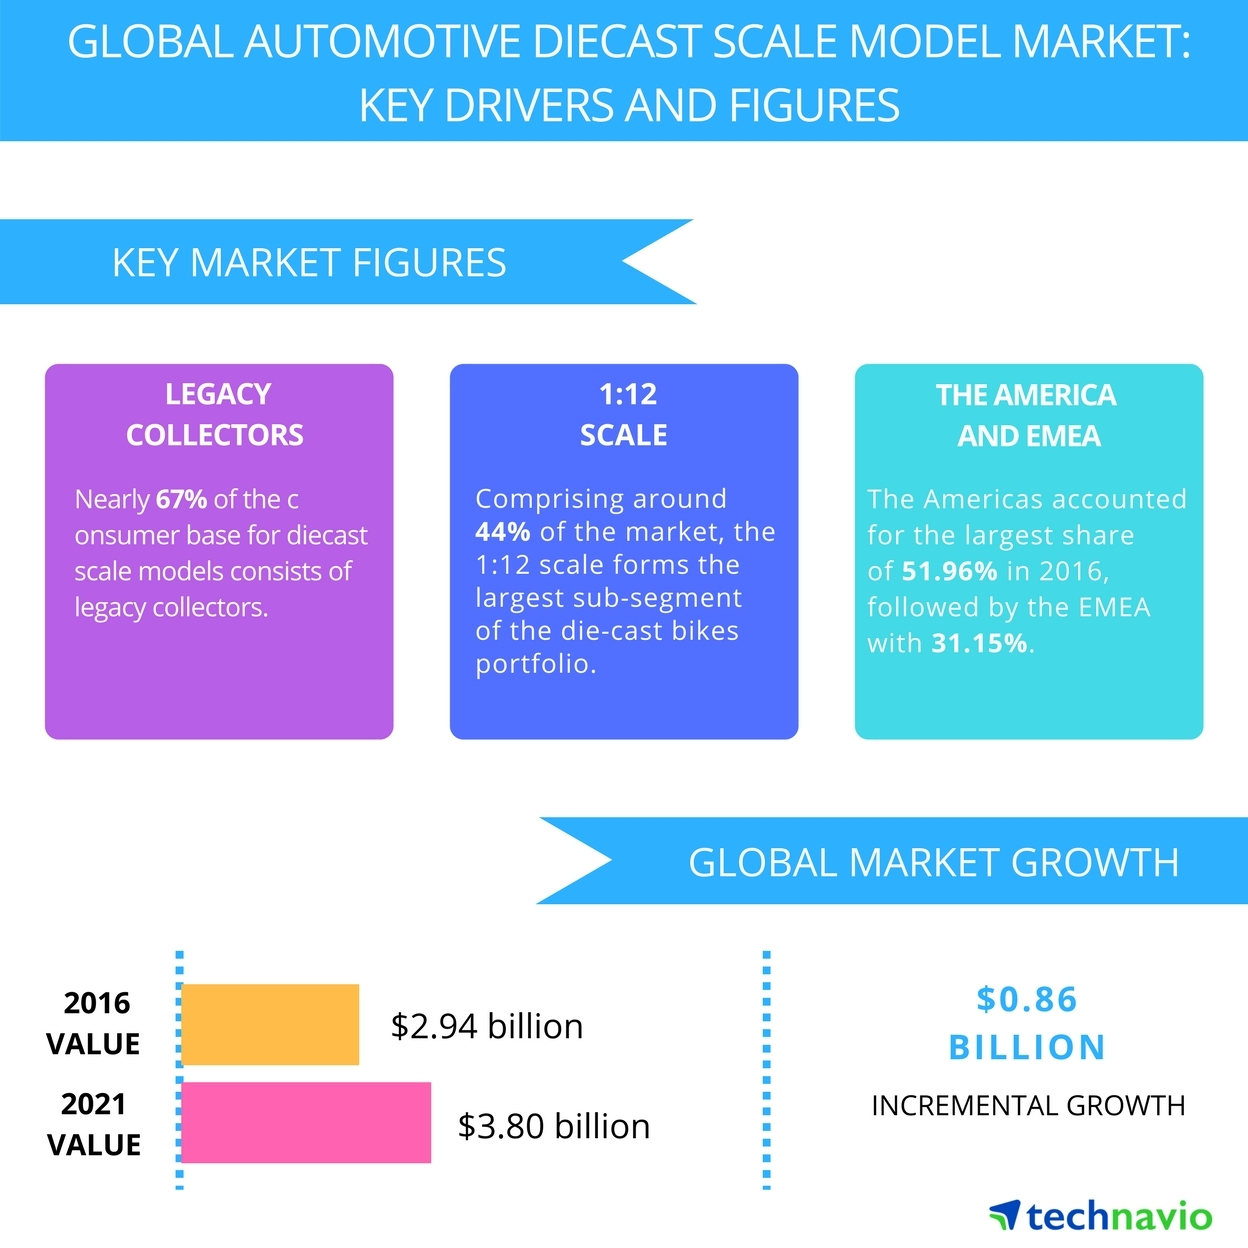 Technavio has announced the release of their 'Global Automotive Diecast Scale Model Market 2017-2021' report. (Graphic: Business Wire)